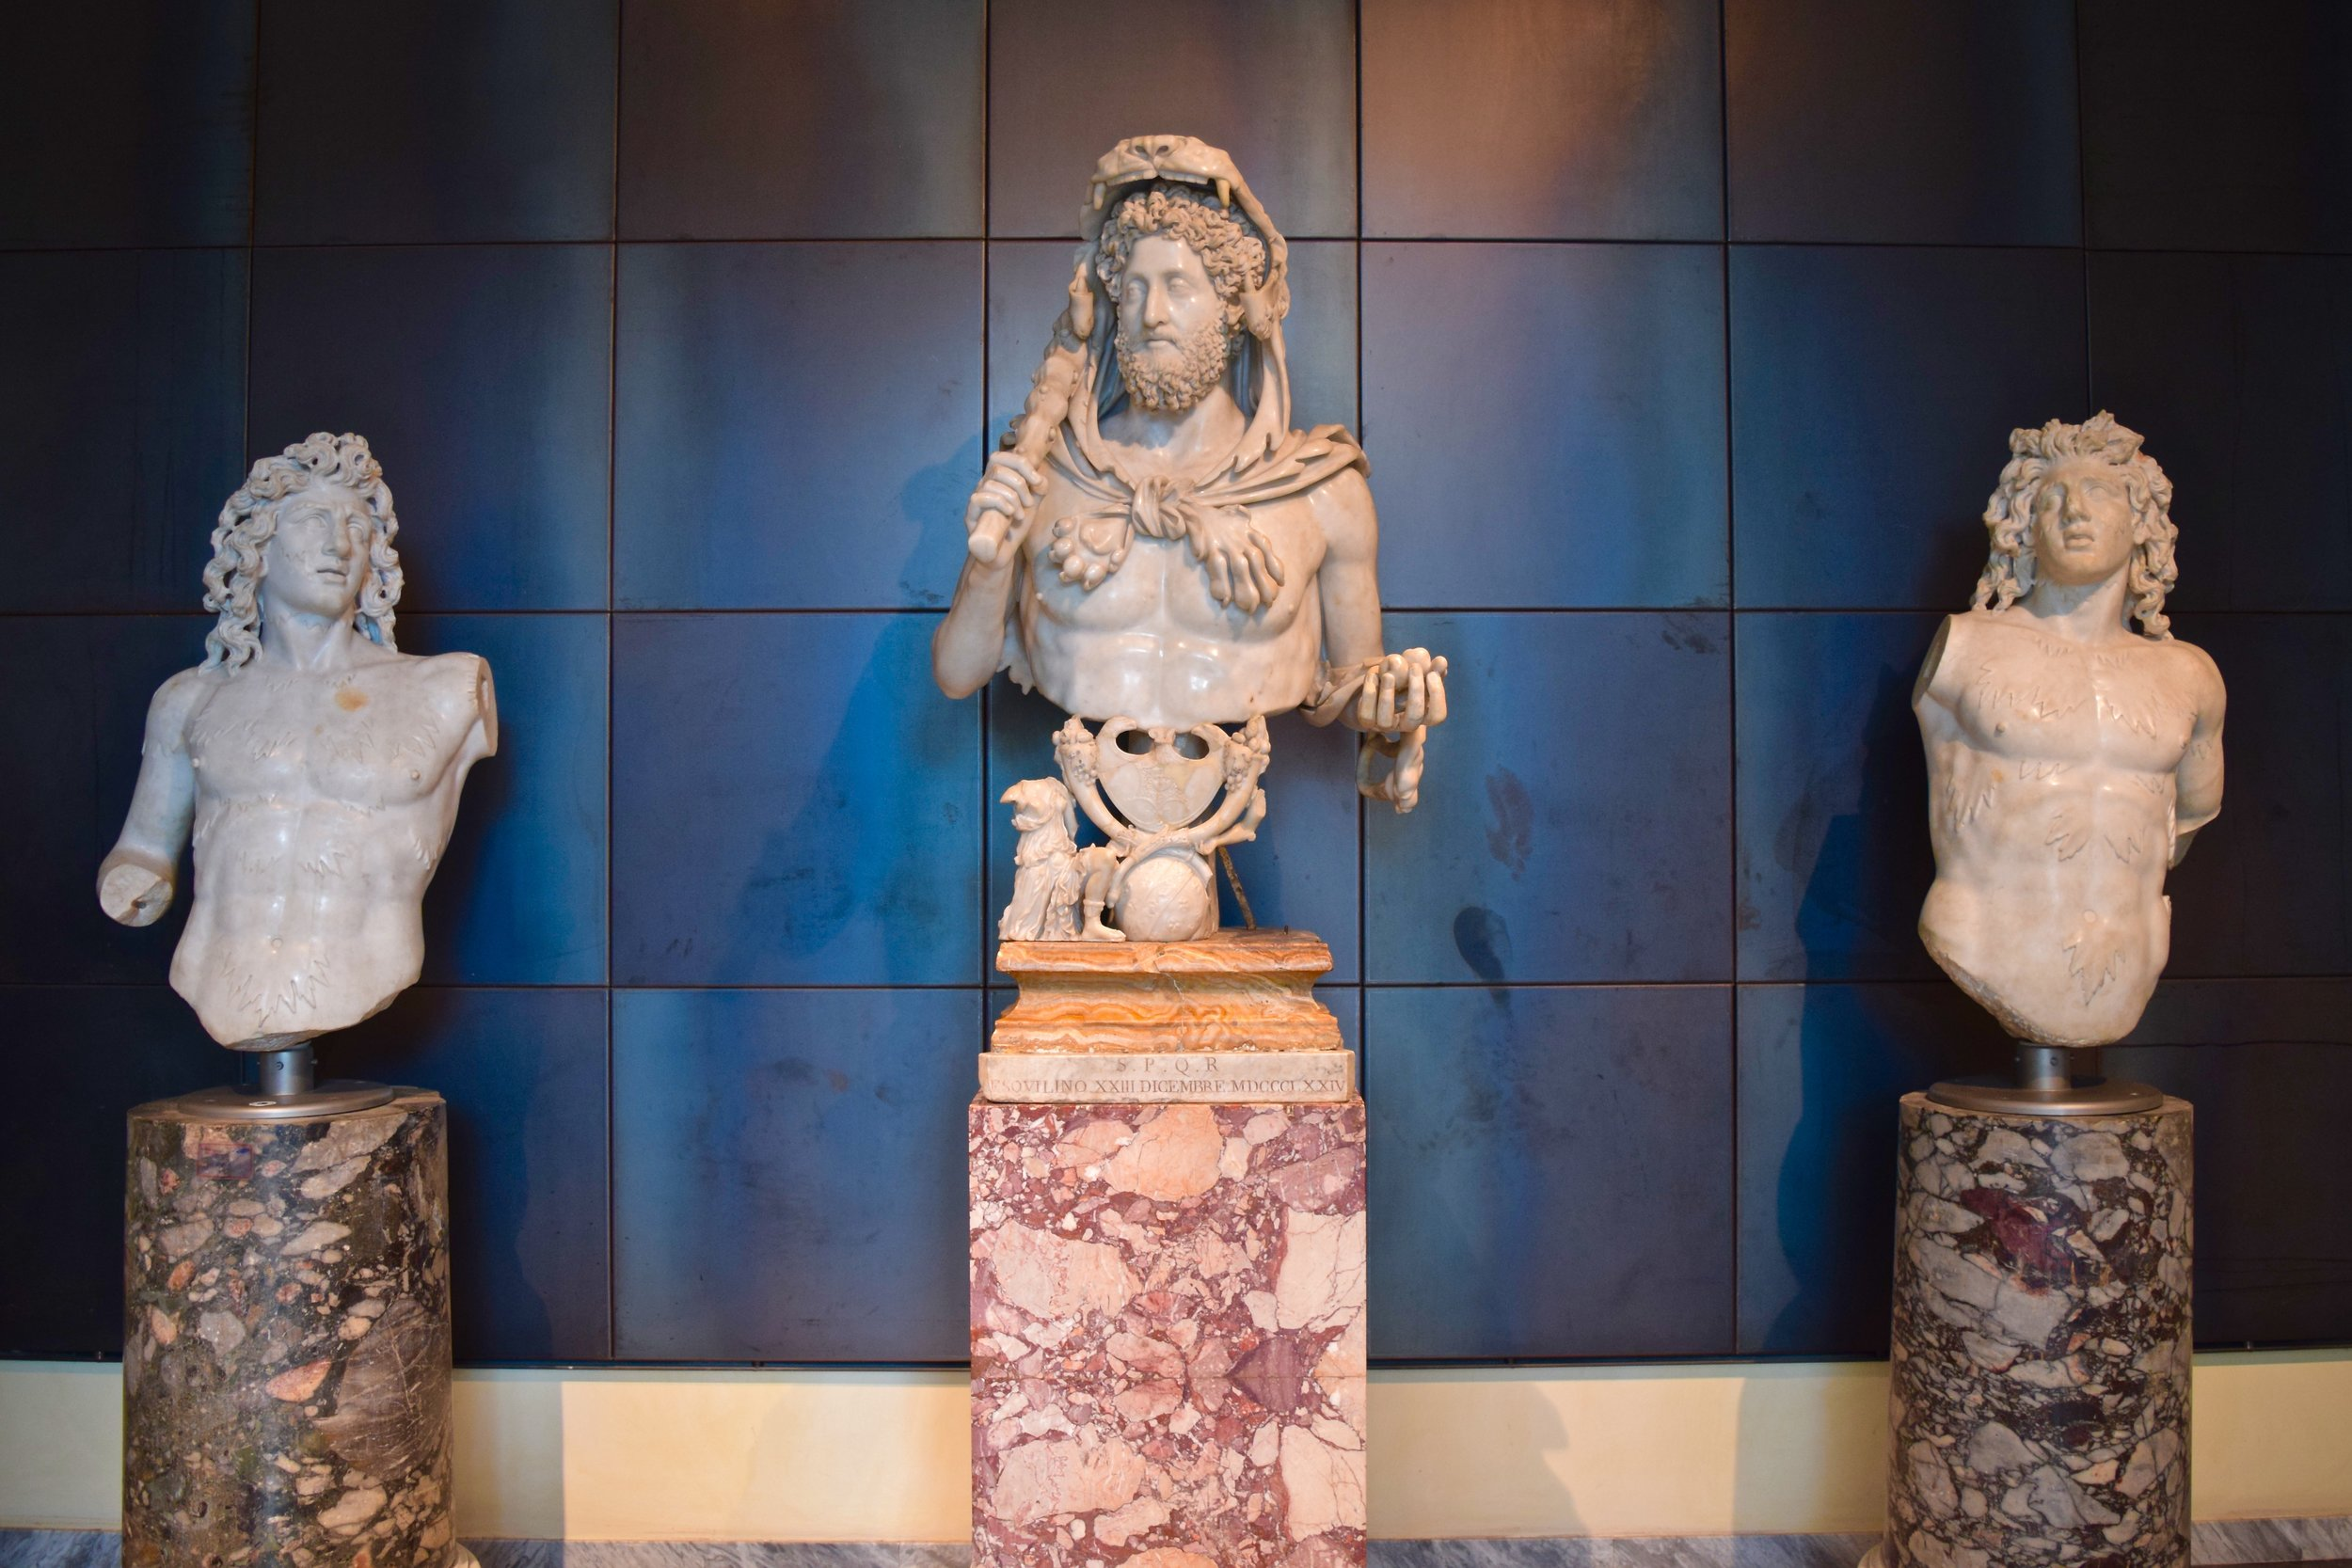 Bust of Commodus as Hercules, Capitoline Museums